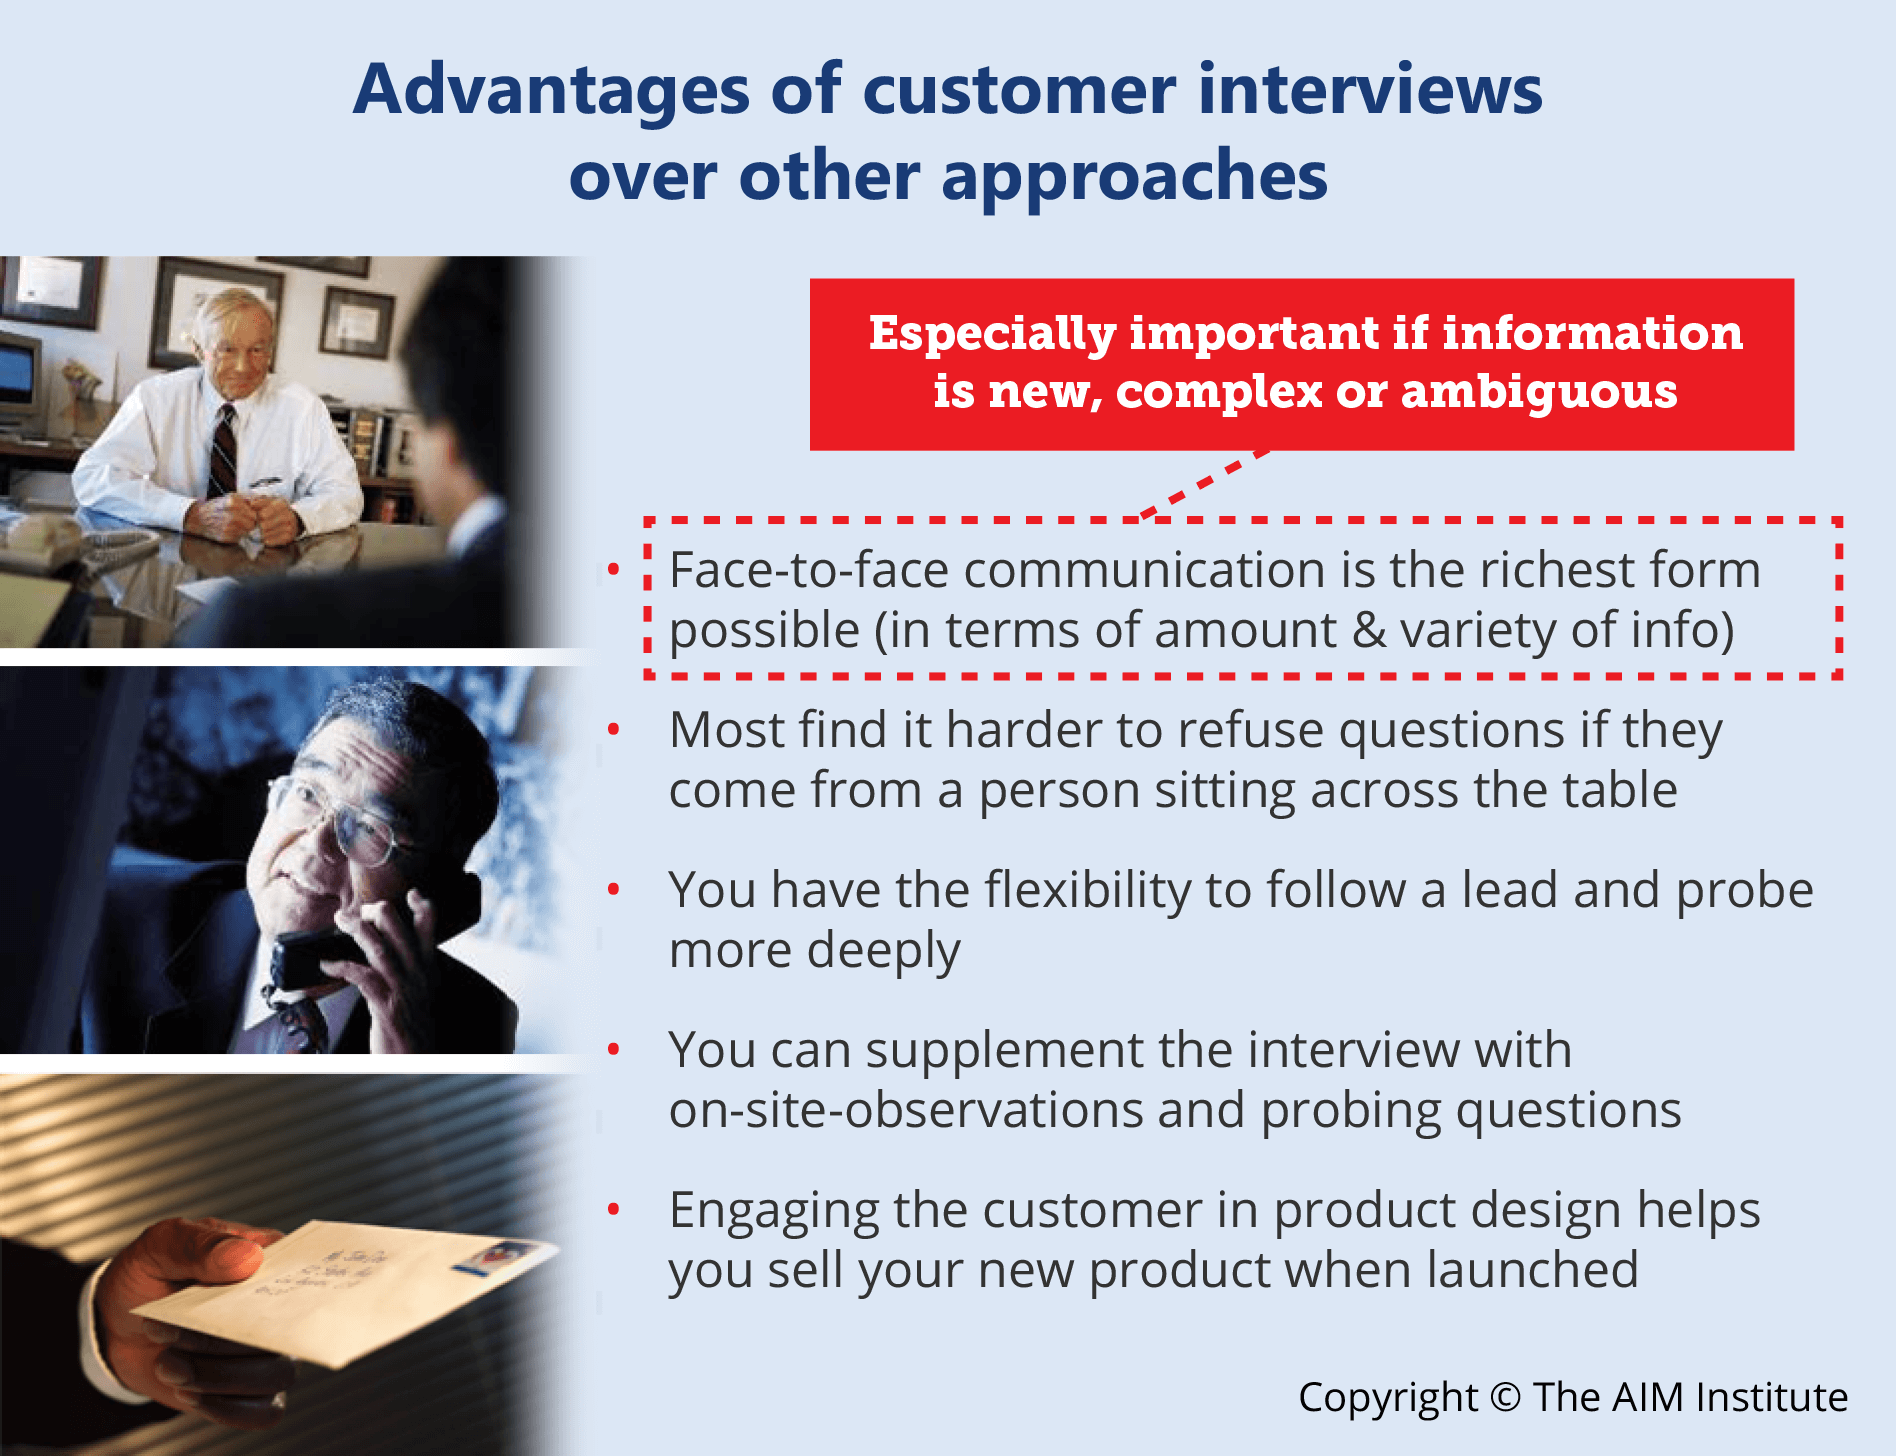 2 Advantages of customer interviews over other approaches